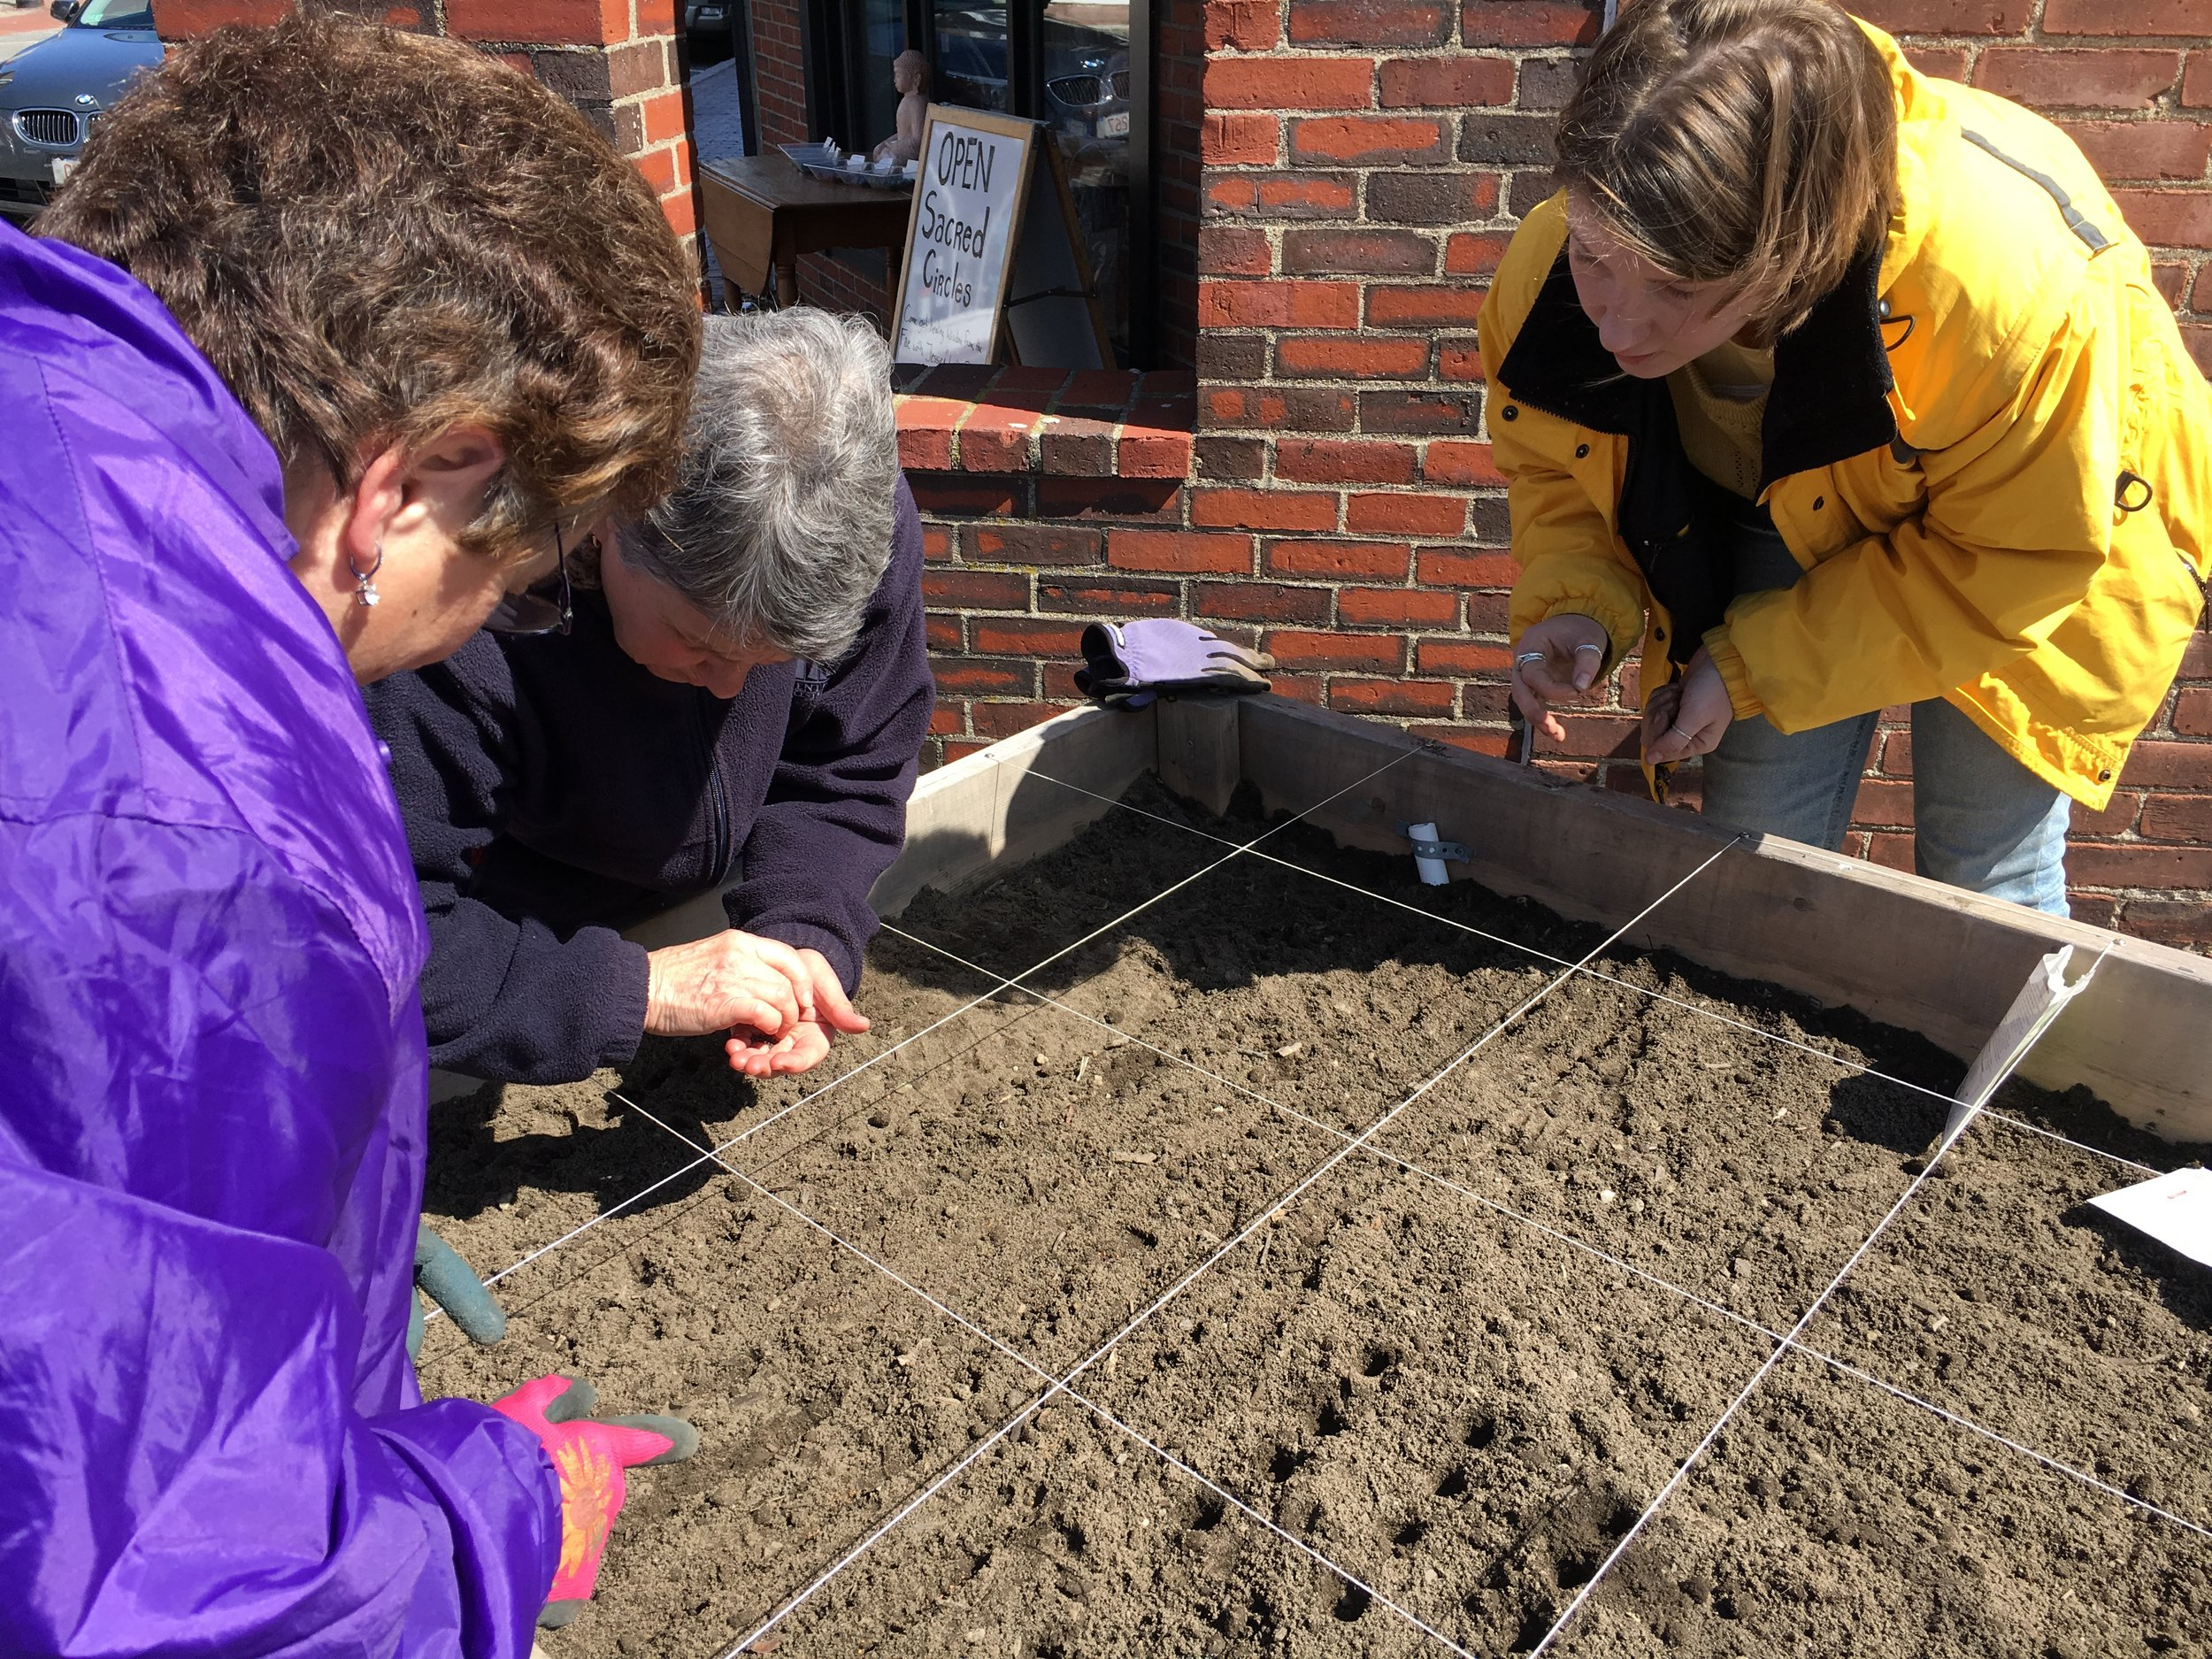 Planting arugula and spinach peas with guests at Rose Baker Senior Center